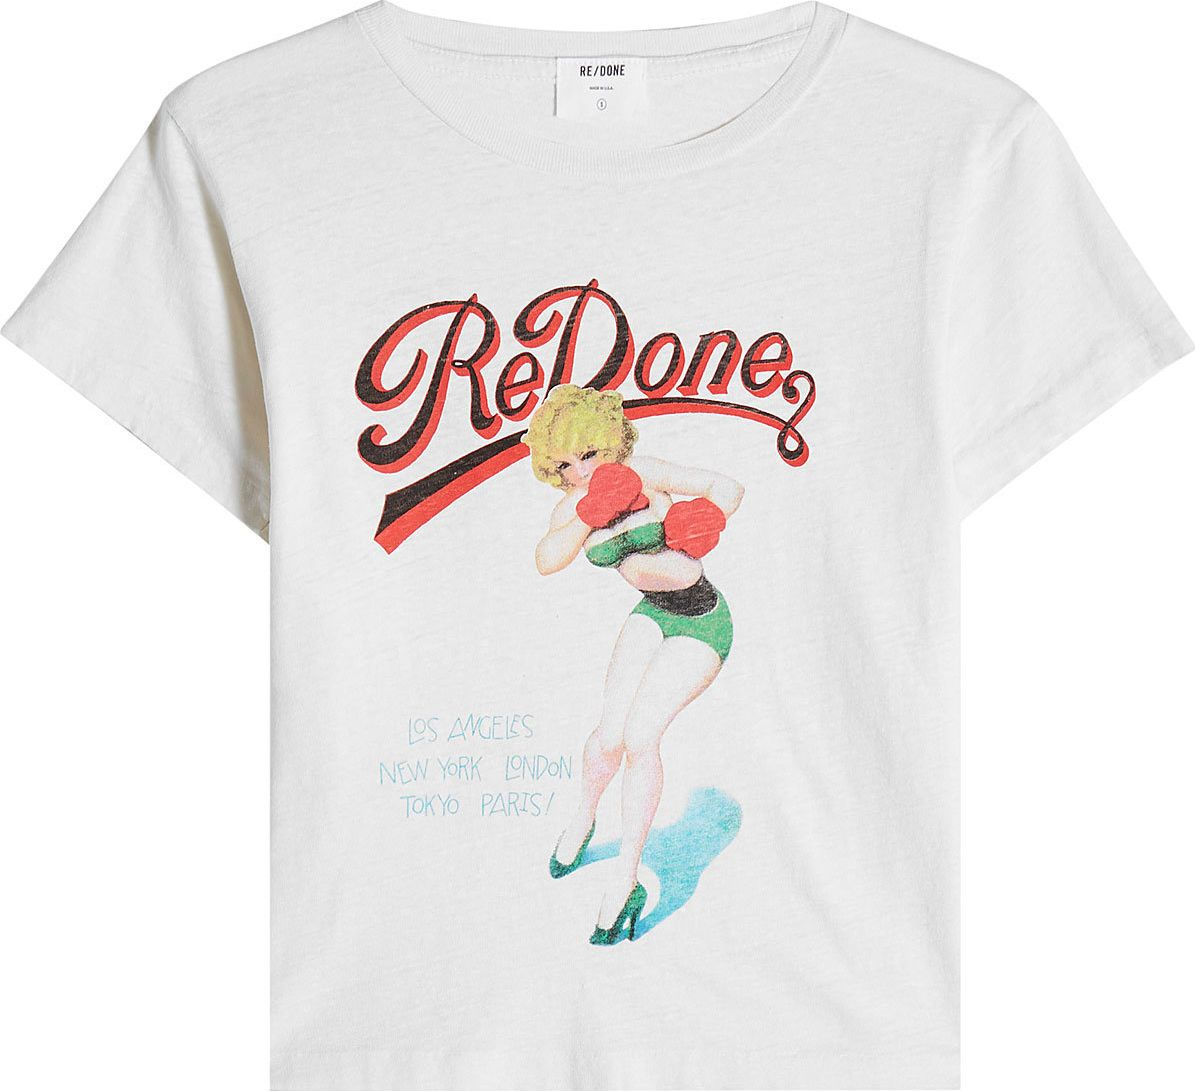 RE/DONE - Printed Cotton T-Shirt